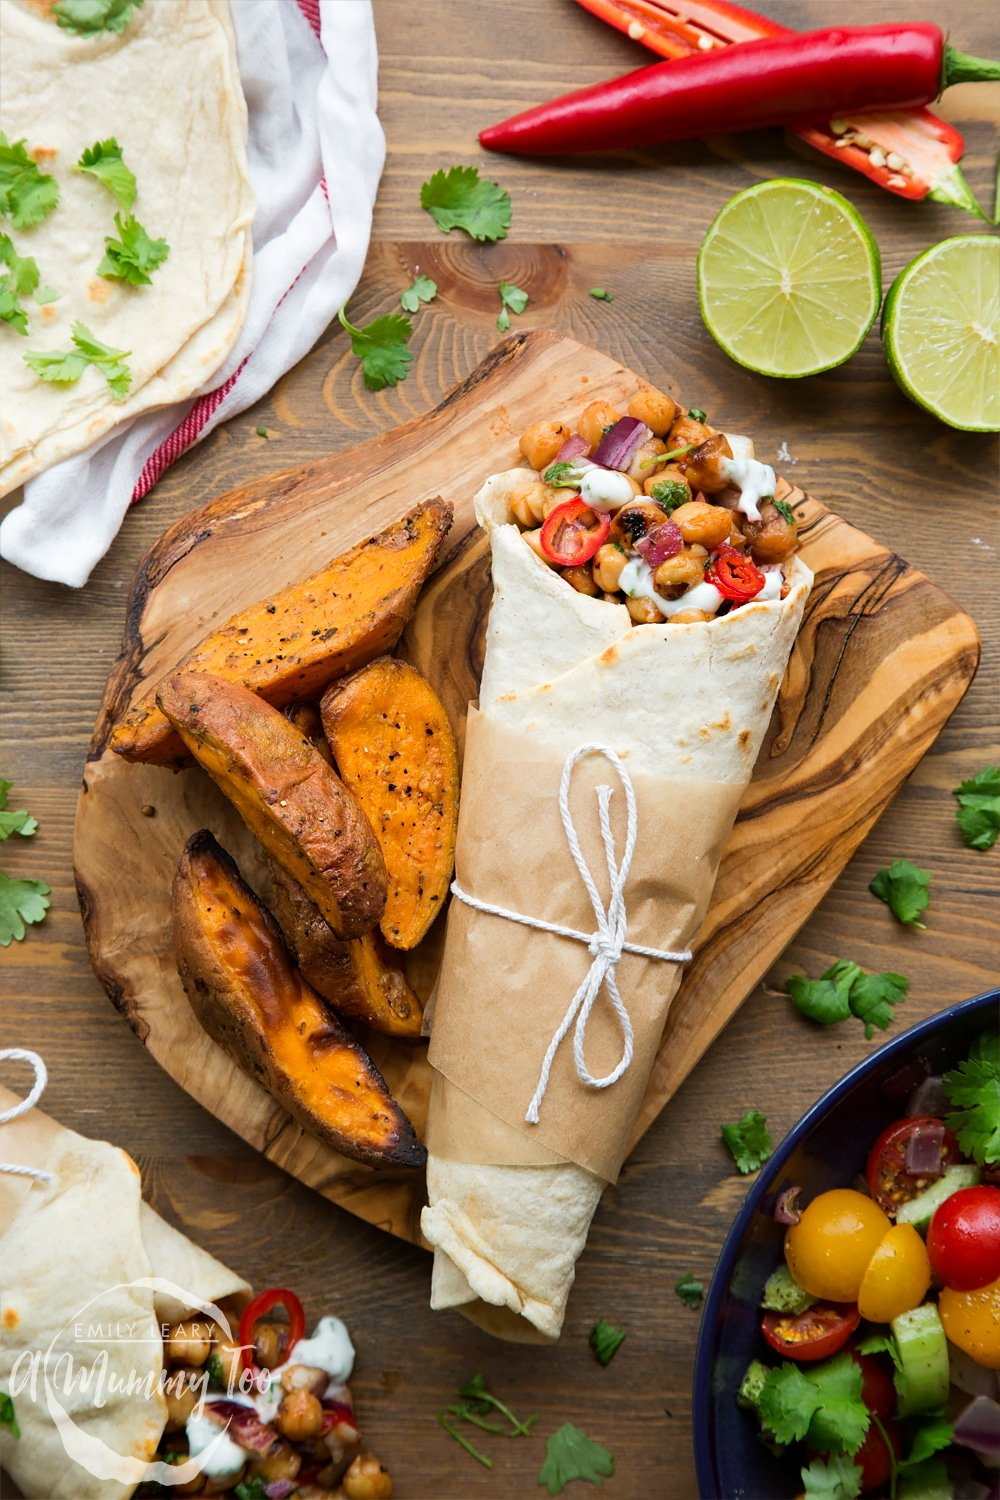 Summer BBQ chickpea wraps, shown at a BBQ ready to eat, alongside potato wedges, tortillas, limes, chilli